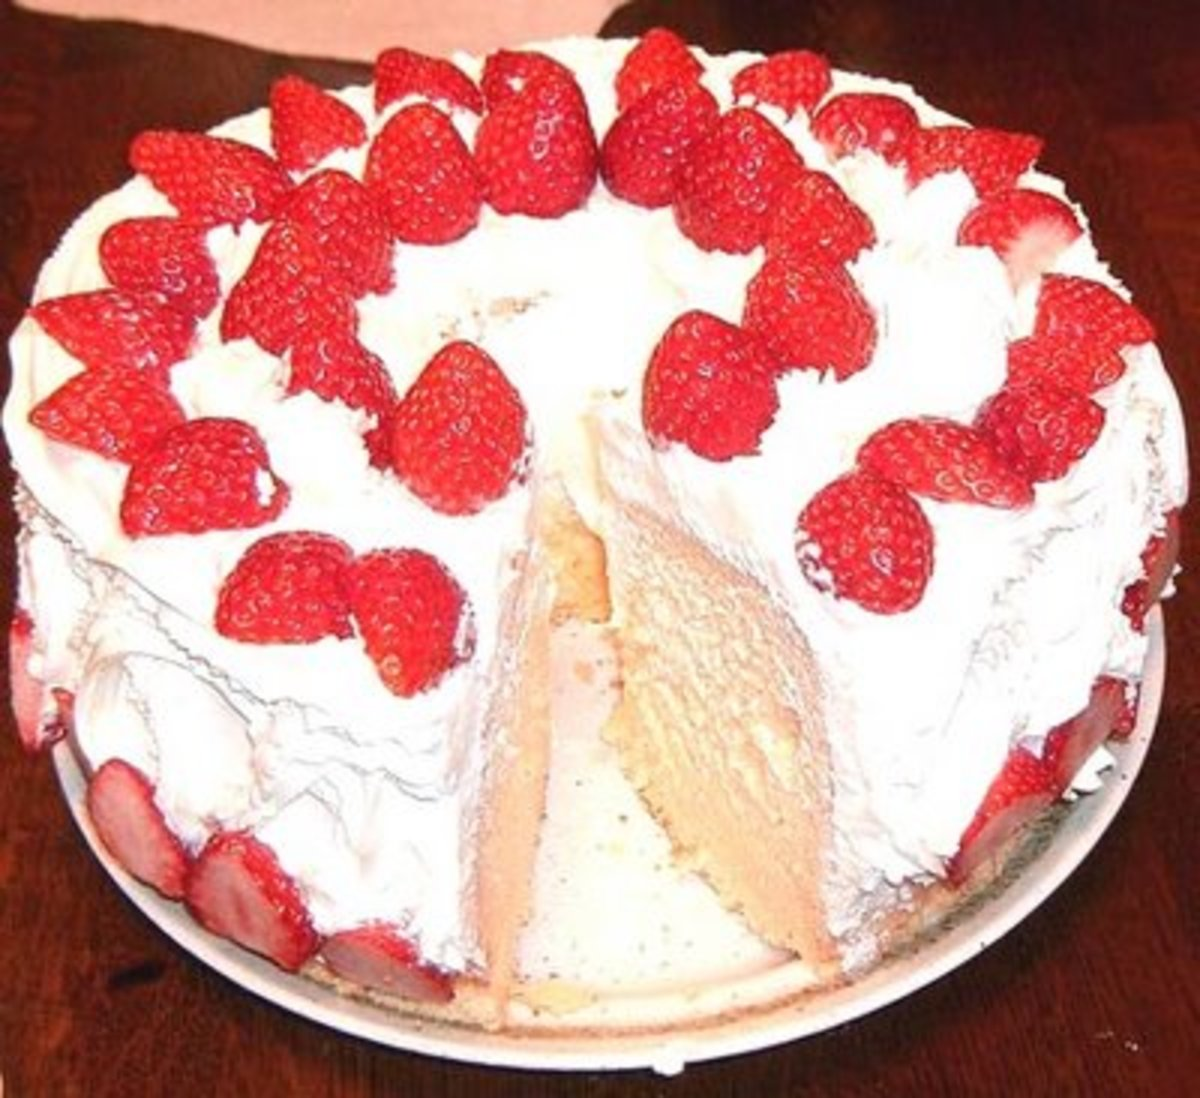 STRAWBERRY CHIFFON CAKE (Photo courtesy of http://1.bp.blogspot.com/)